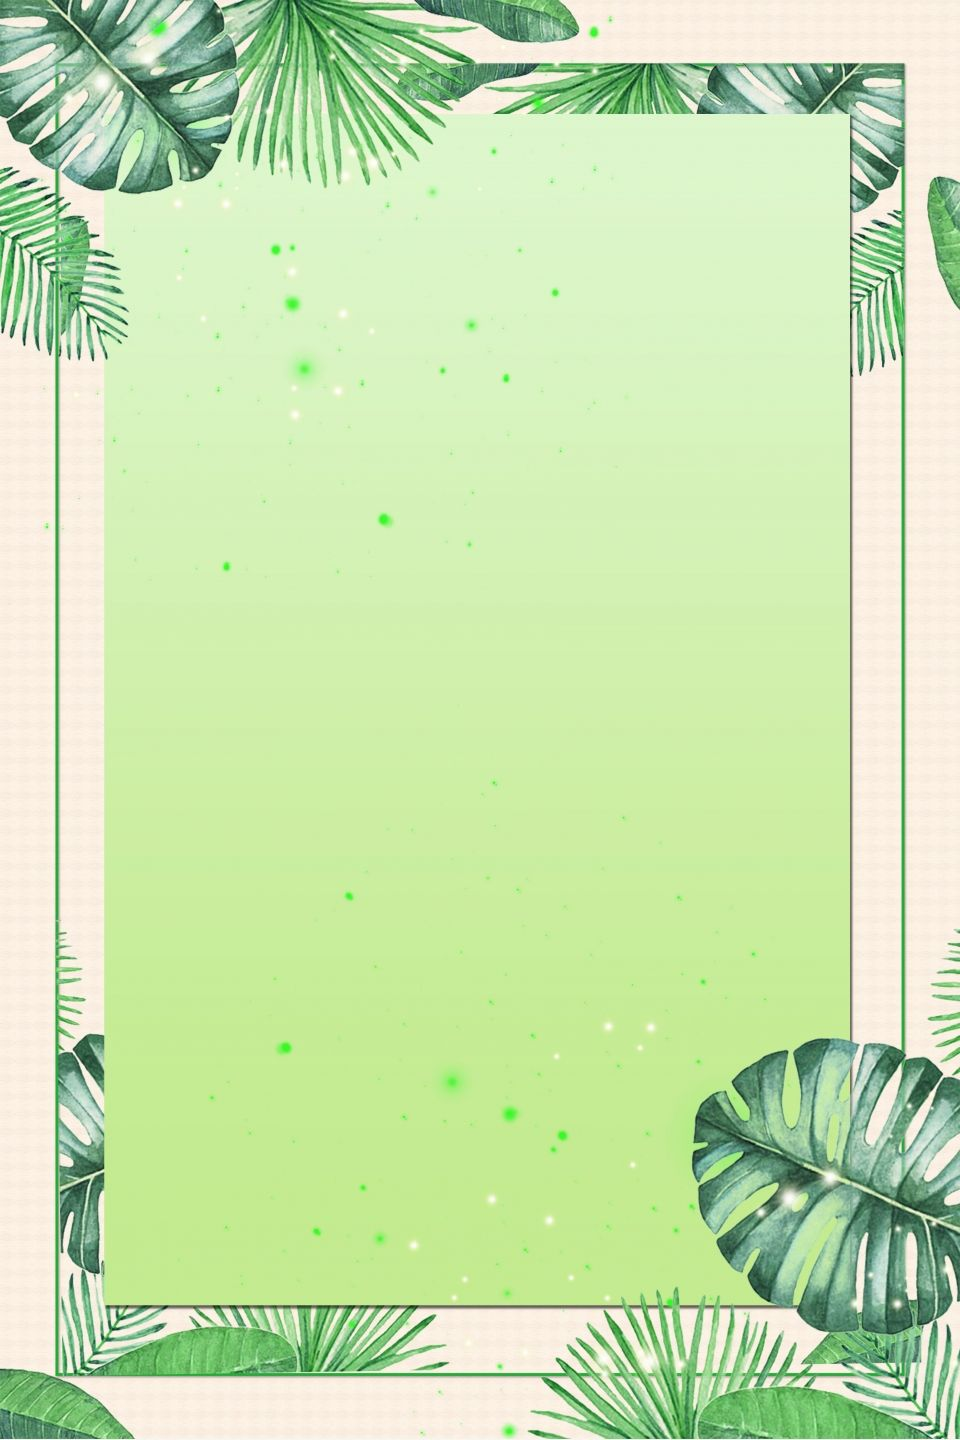 Spring Green Fresh Flower Plant Border Graphic Design Background Templates Cute Tumblr Wallpaper Floral Poster